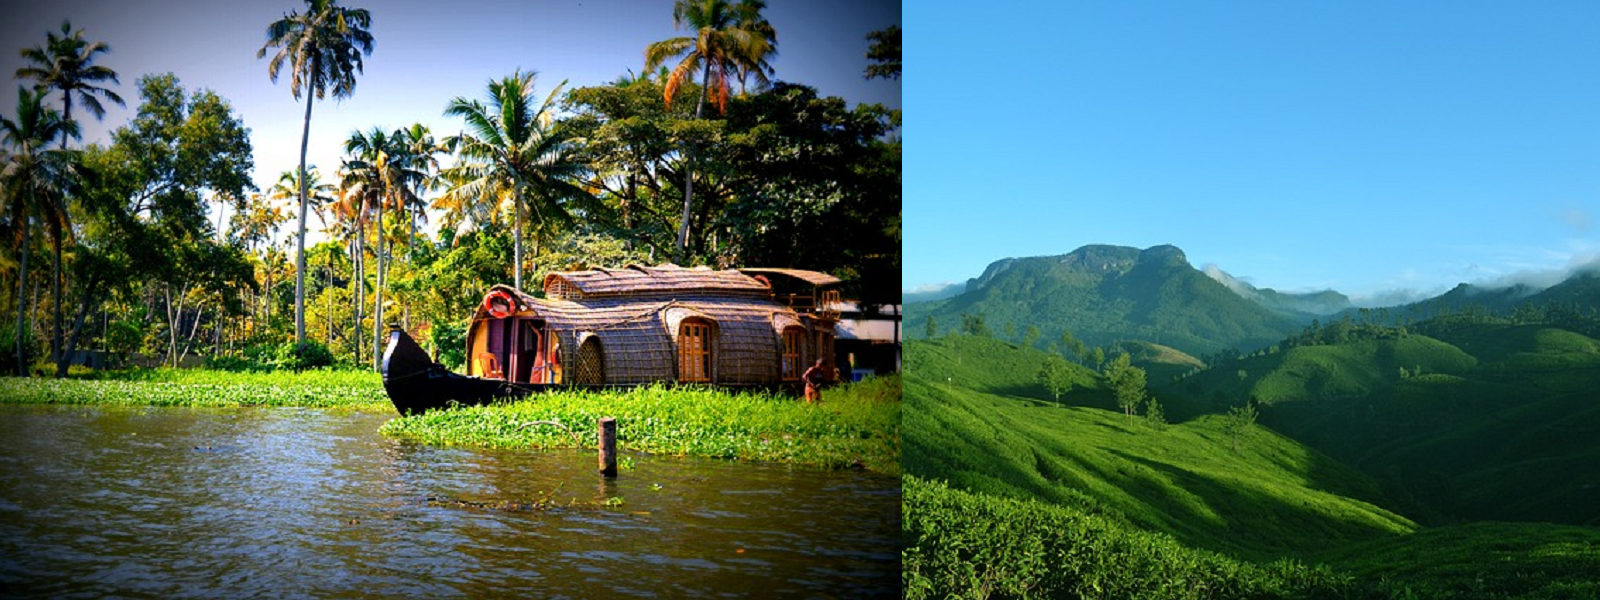 5 day Kerala Tour Plan